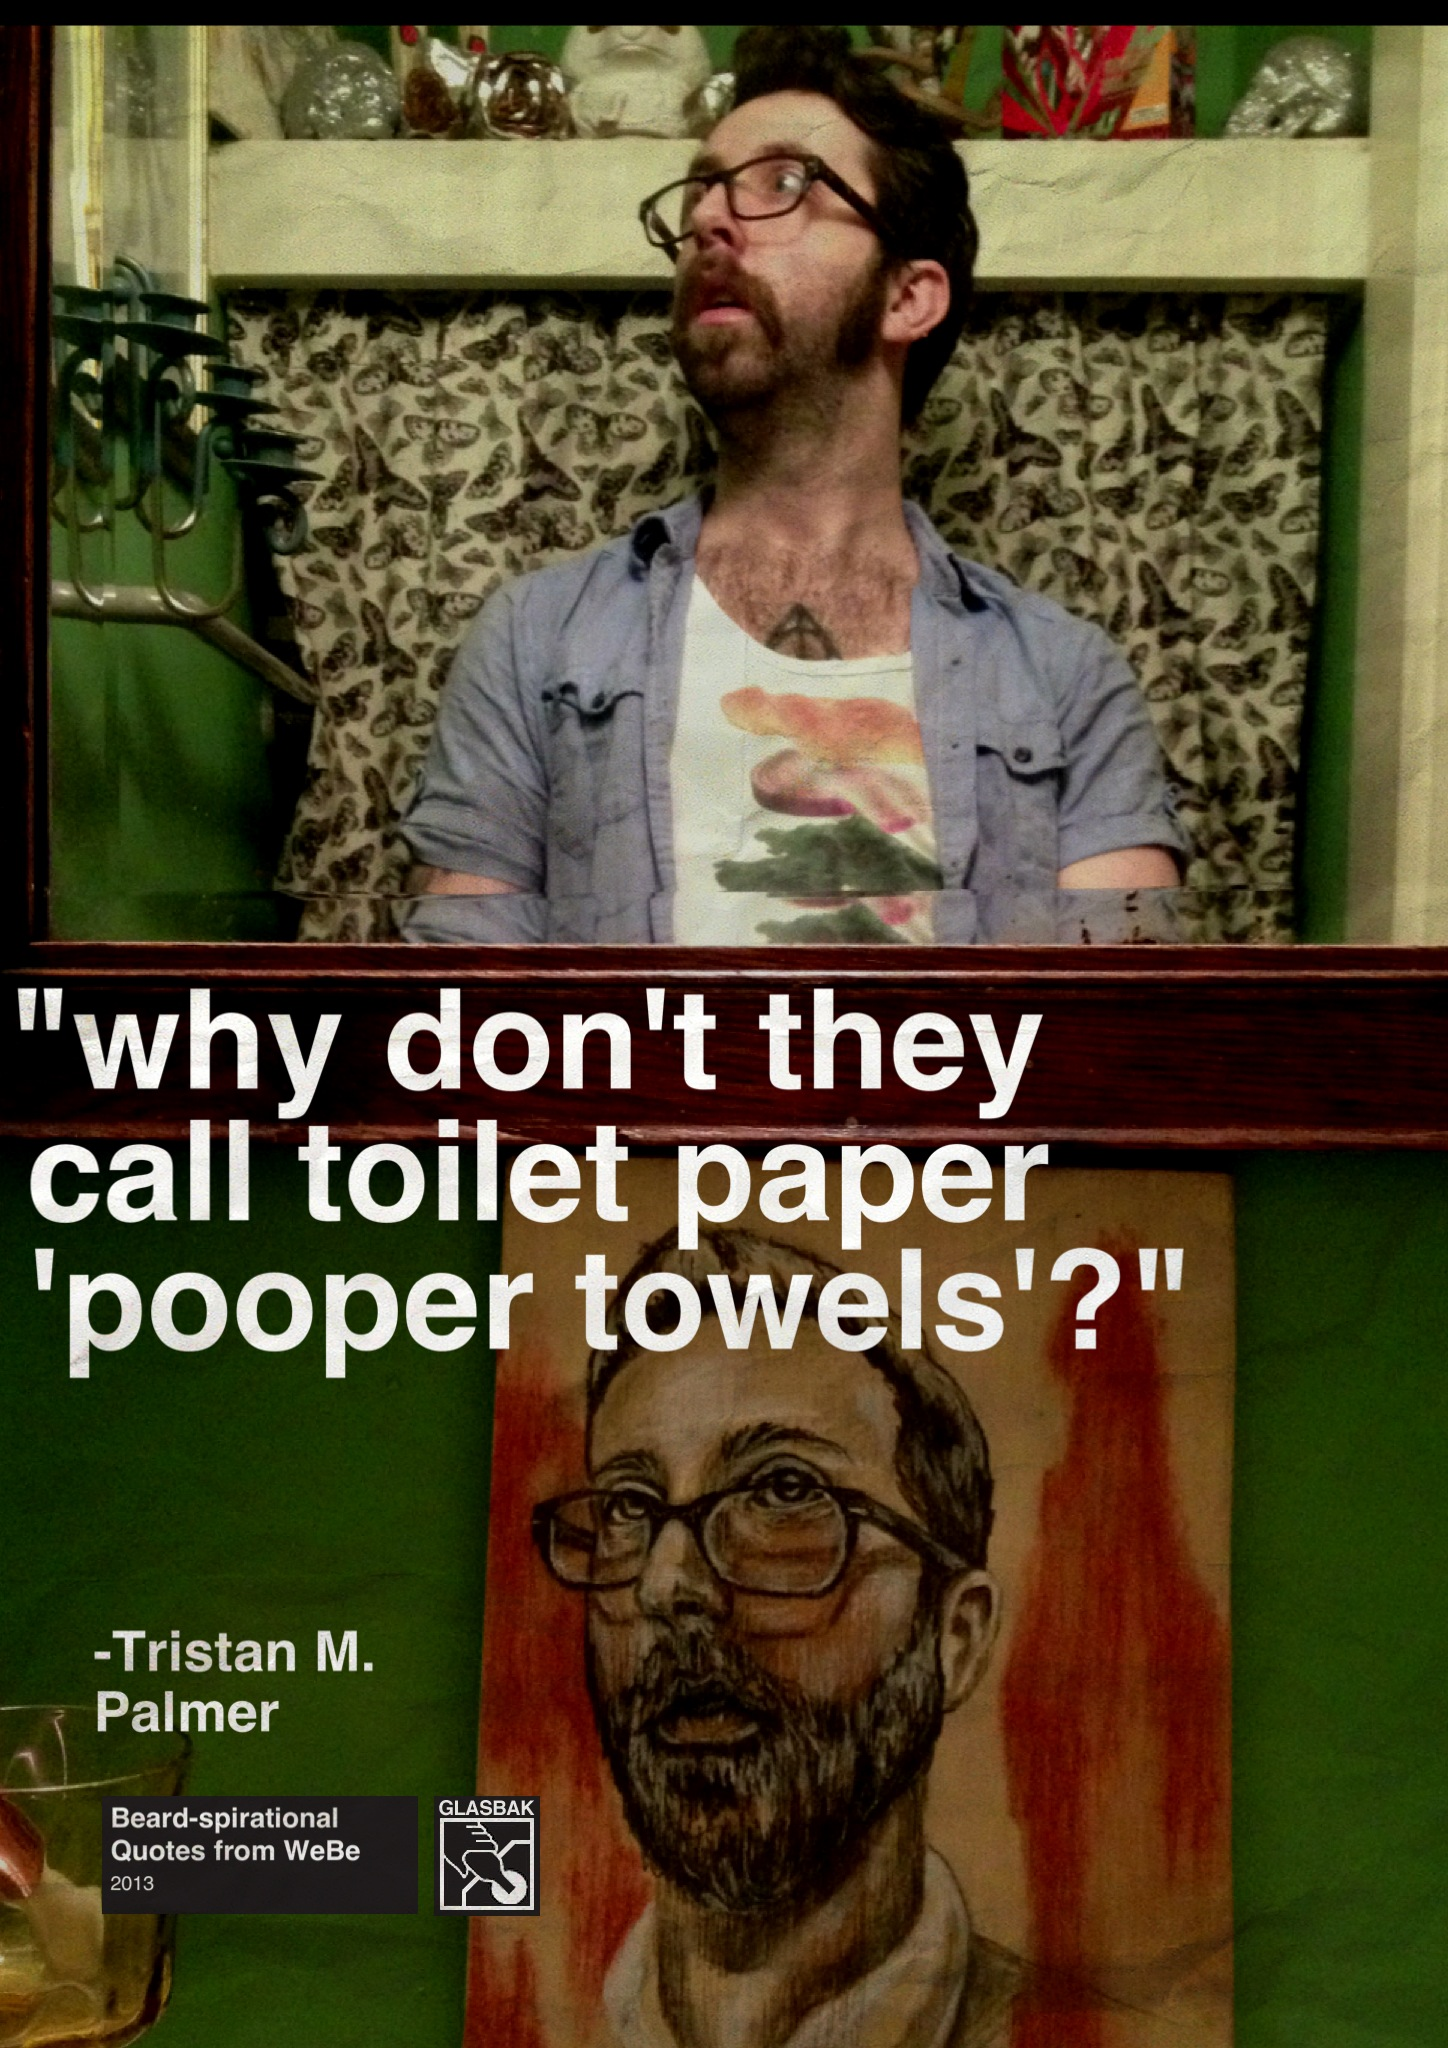 2013-09-09_why don't they call toilet paper pooper towels.jpg